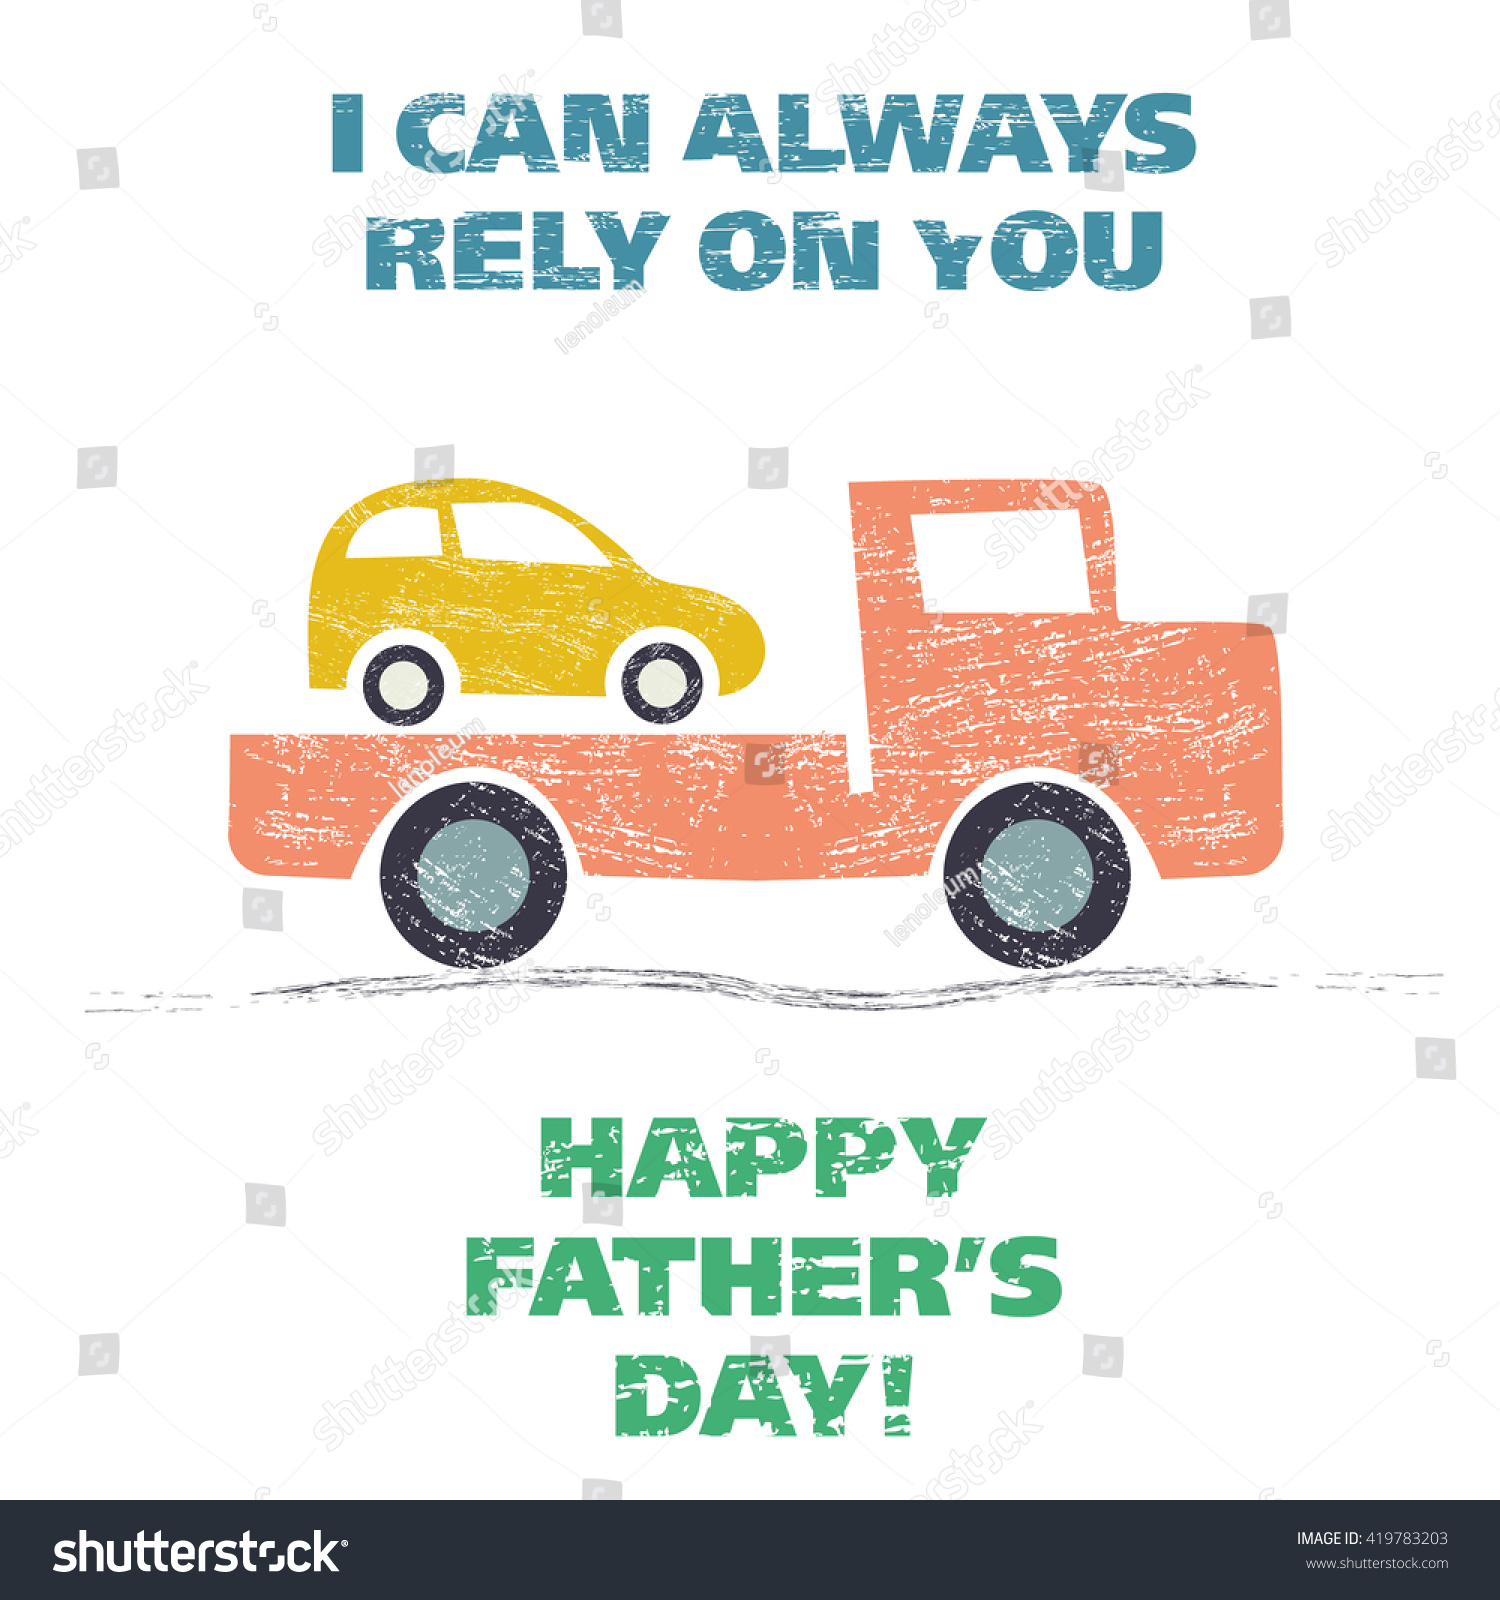 Happy Fathers Day Grunge Vector Illustration Stock Vector Royalty Free 419783203